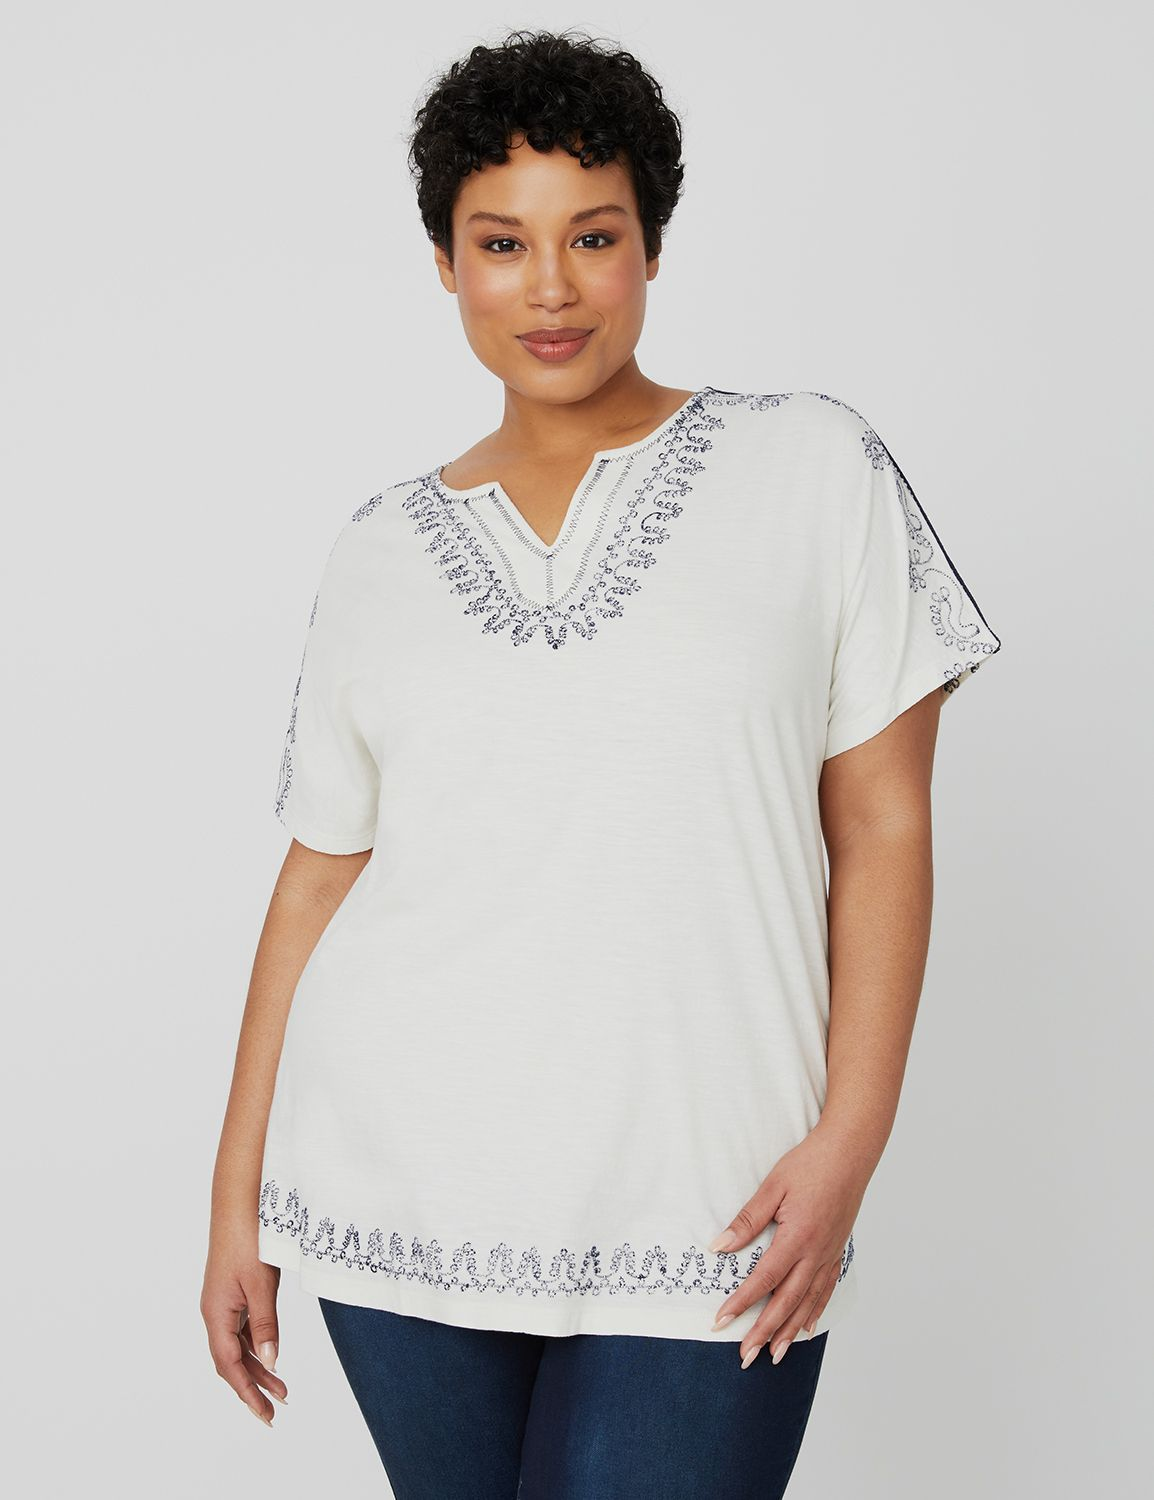 Embroidered Melody Top 1089840 EMBROIDERED SPLIT NECK MP-300099851